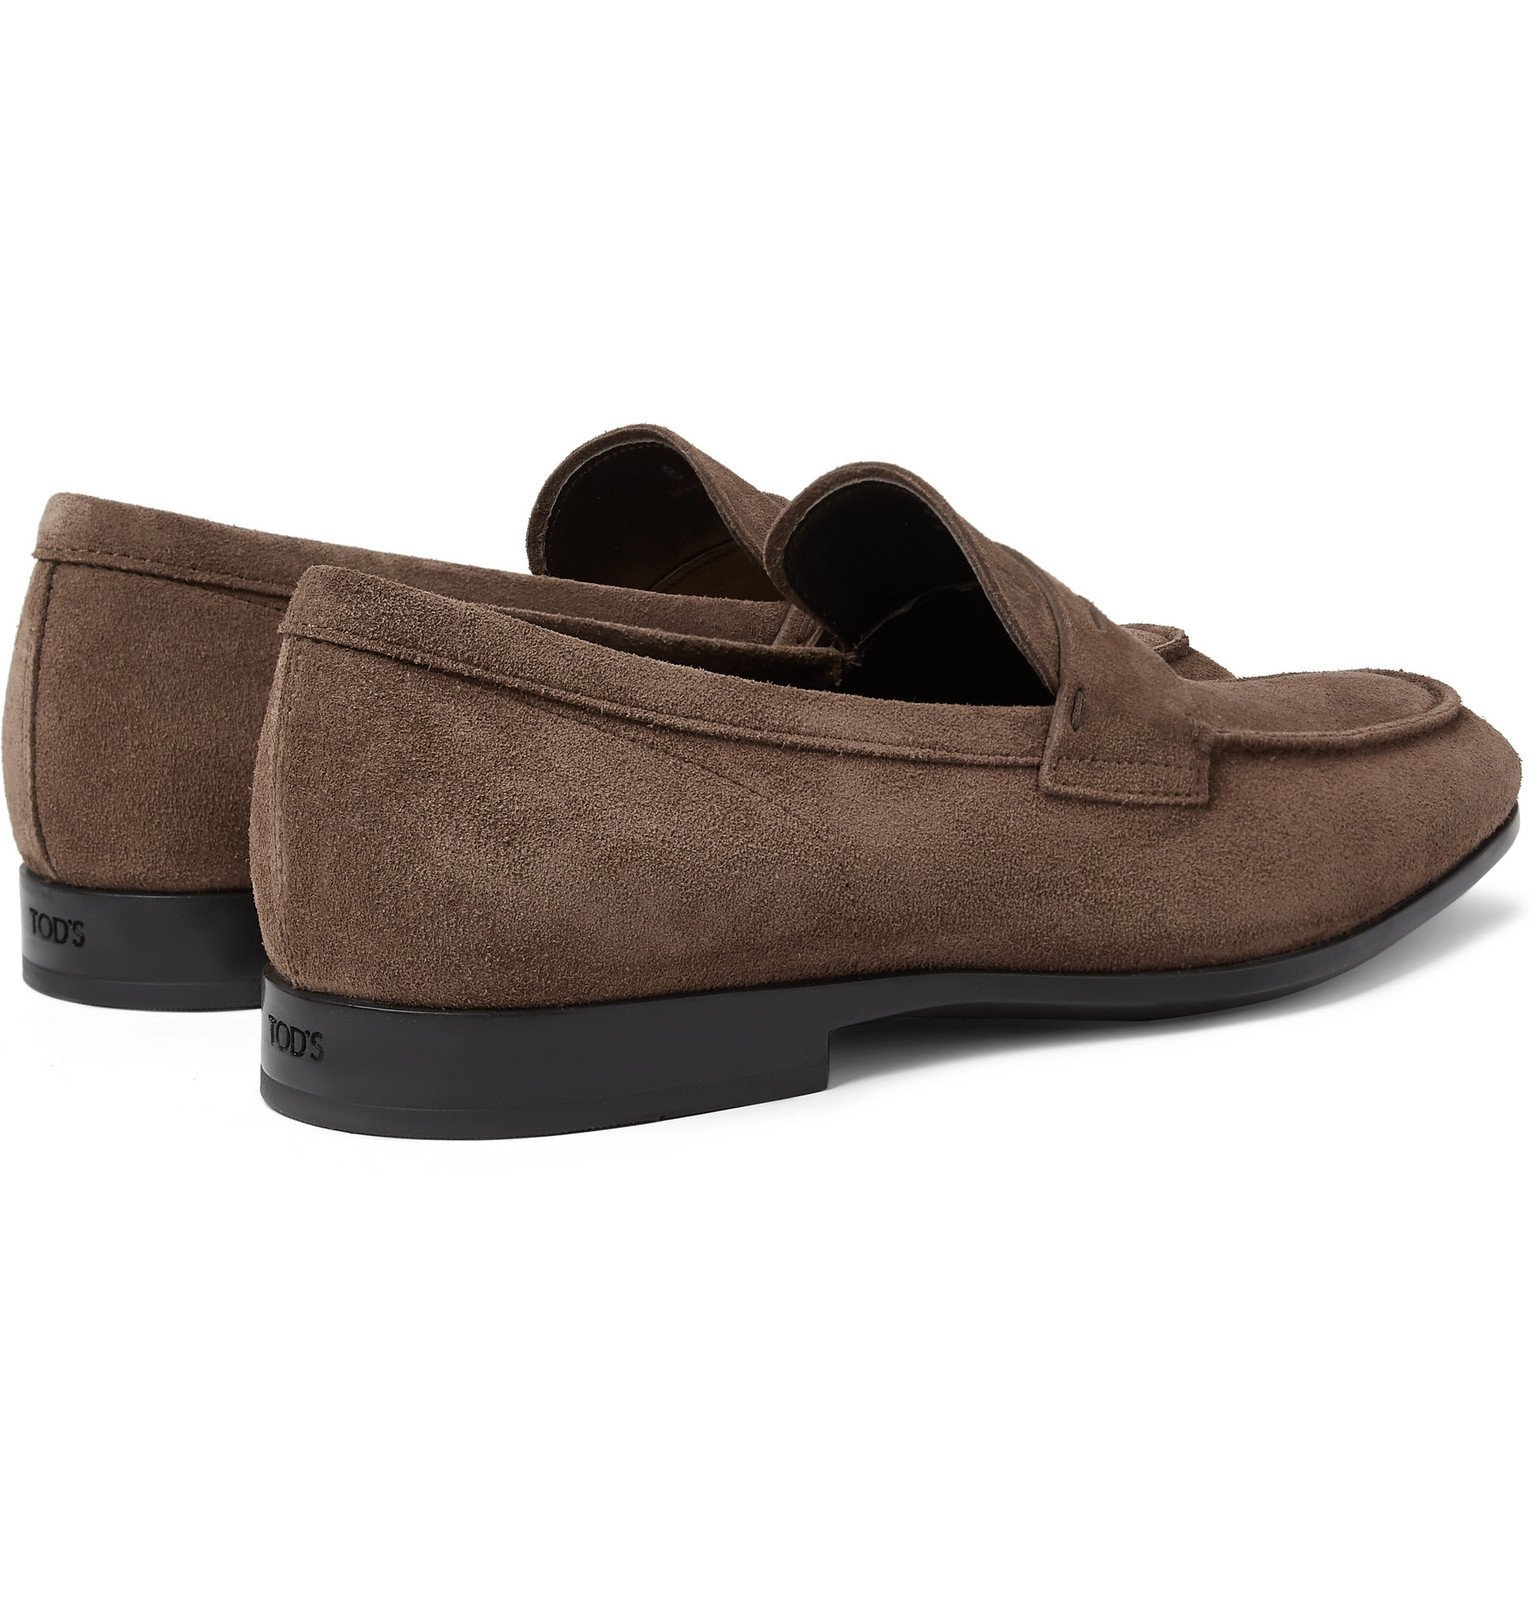 Tod's - Suede Penny Loafers - Brown